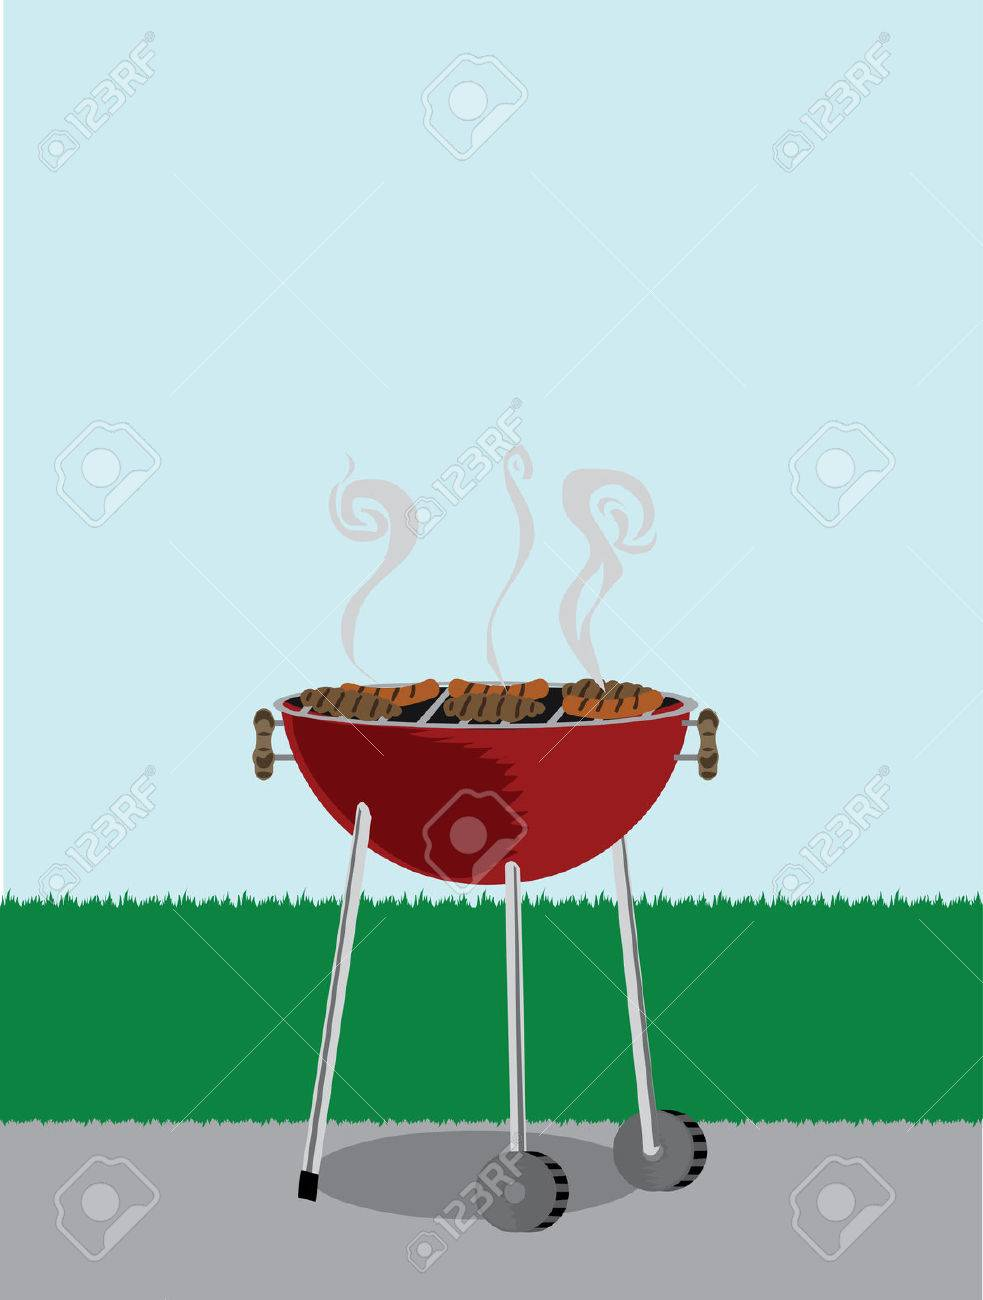 Cookout border clipart hot dog cookout invite stock vector art - Charcoal Grill Bbq Grill Outside Covered With Cooking Hotdogs